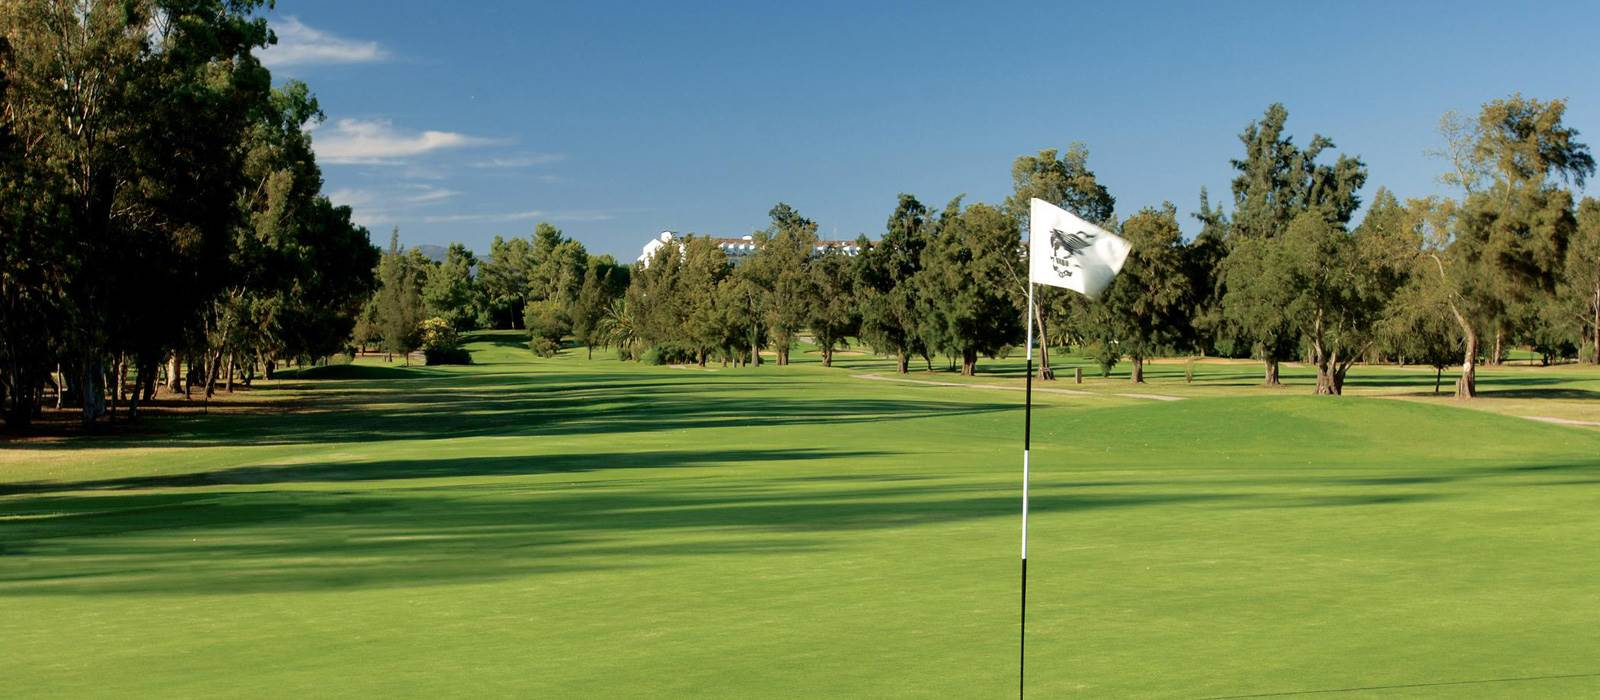 17th Hole on the Resort Course at Penina Hotel and Golf Resort